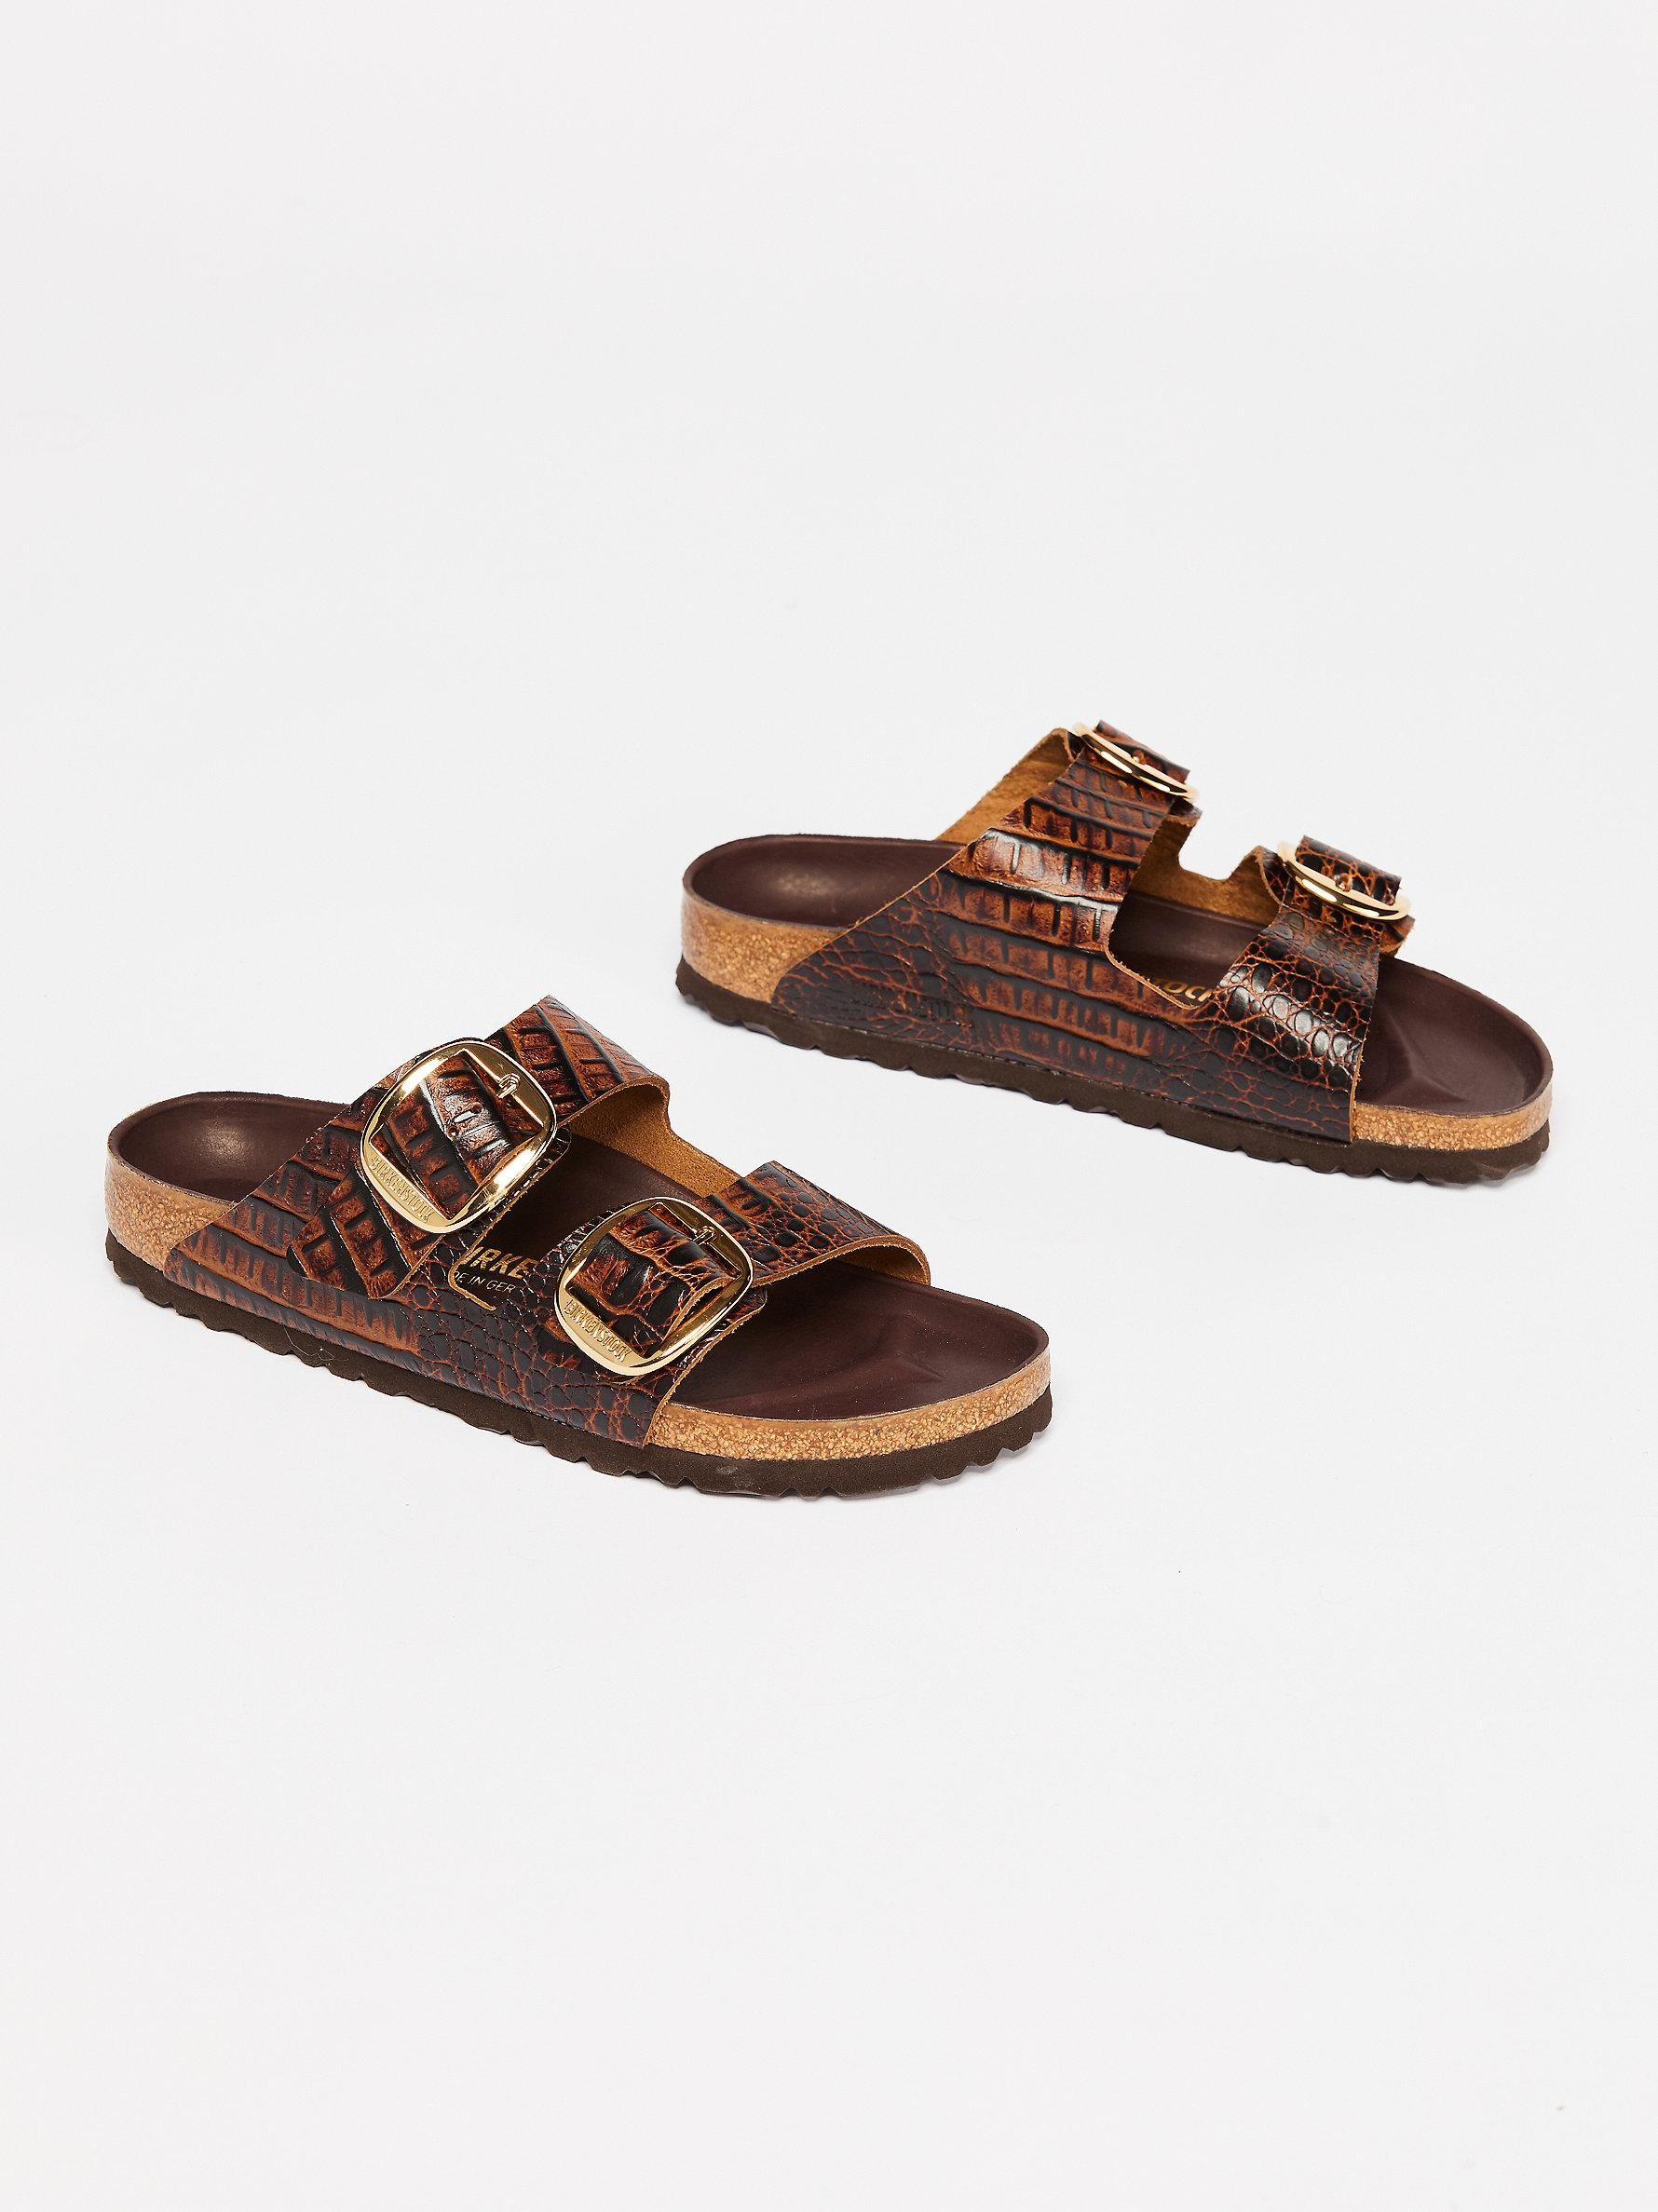 b93b1990e1479 Free People Croc Arizona Big Buckle Birkenstock in Brown - Lyst